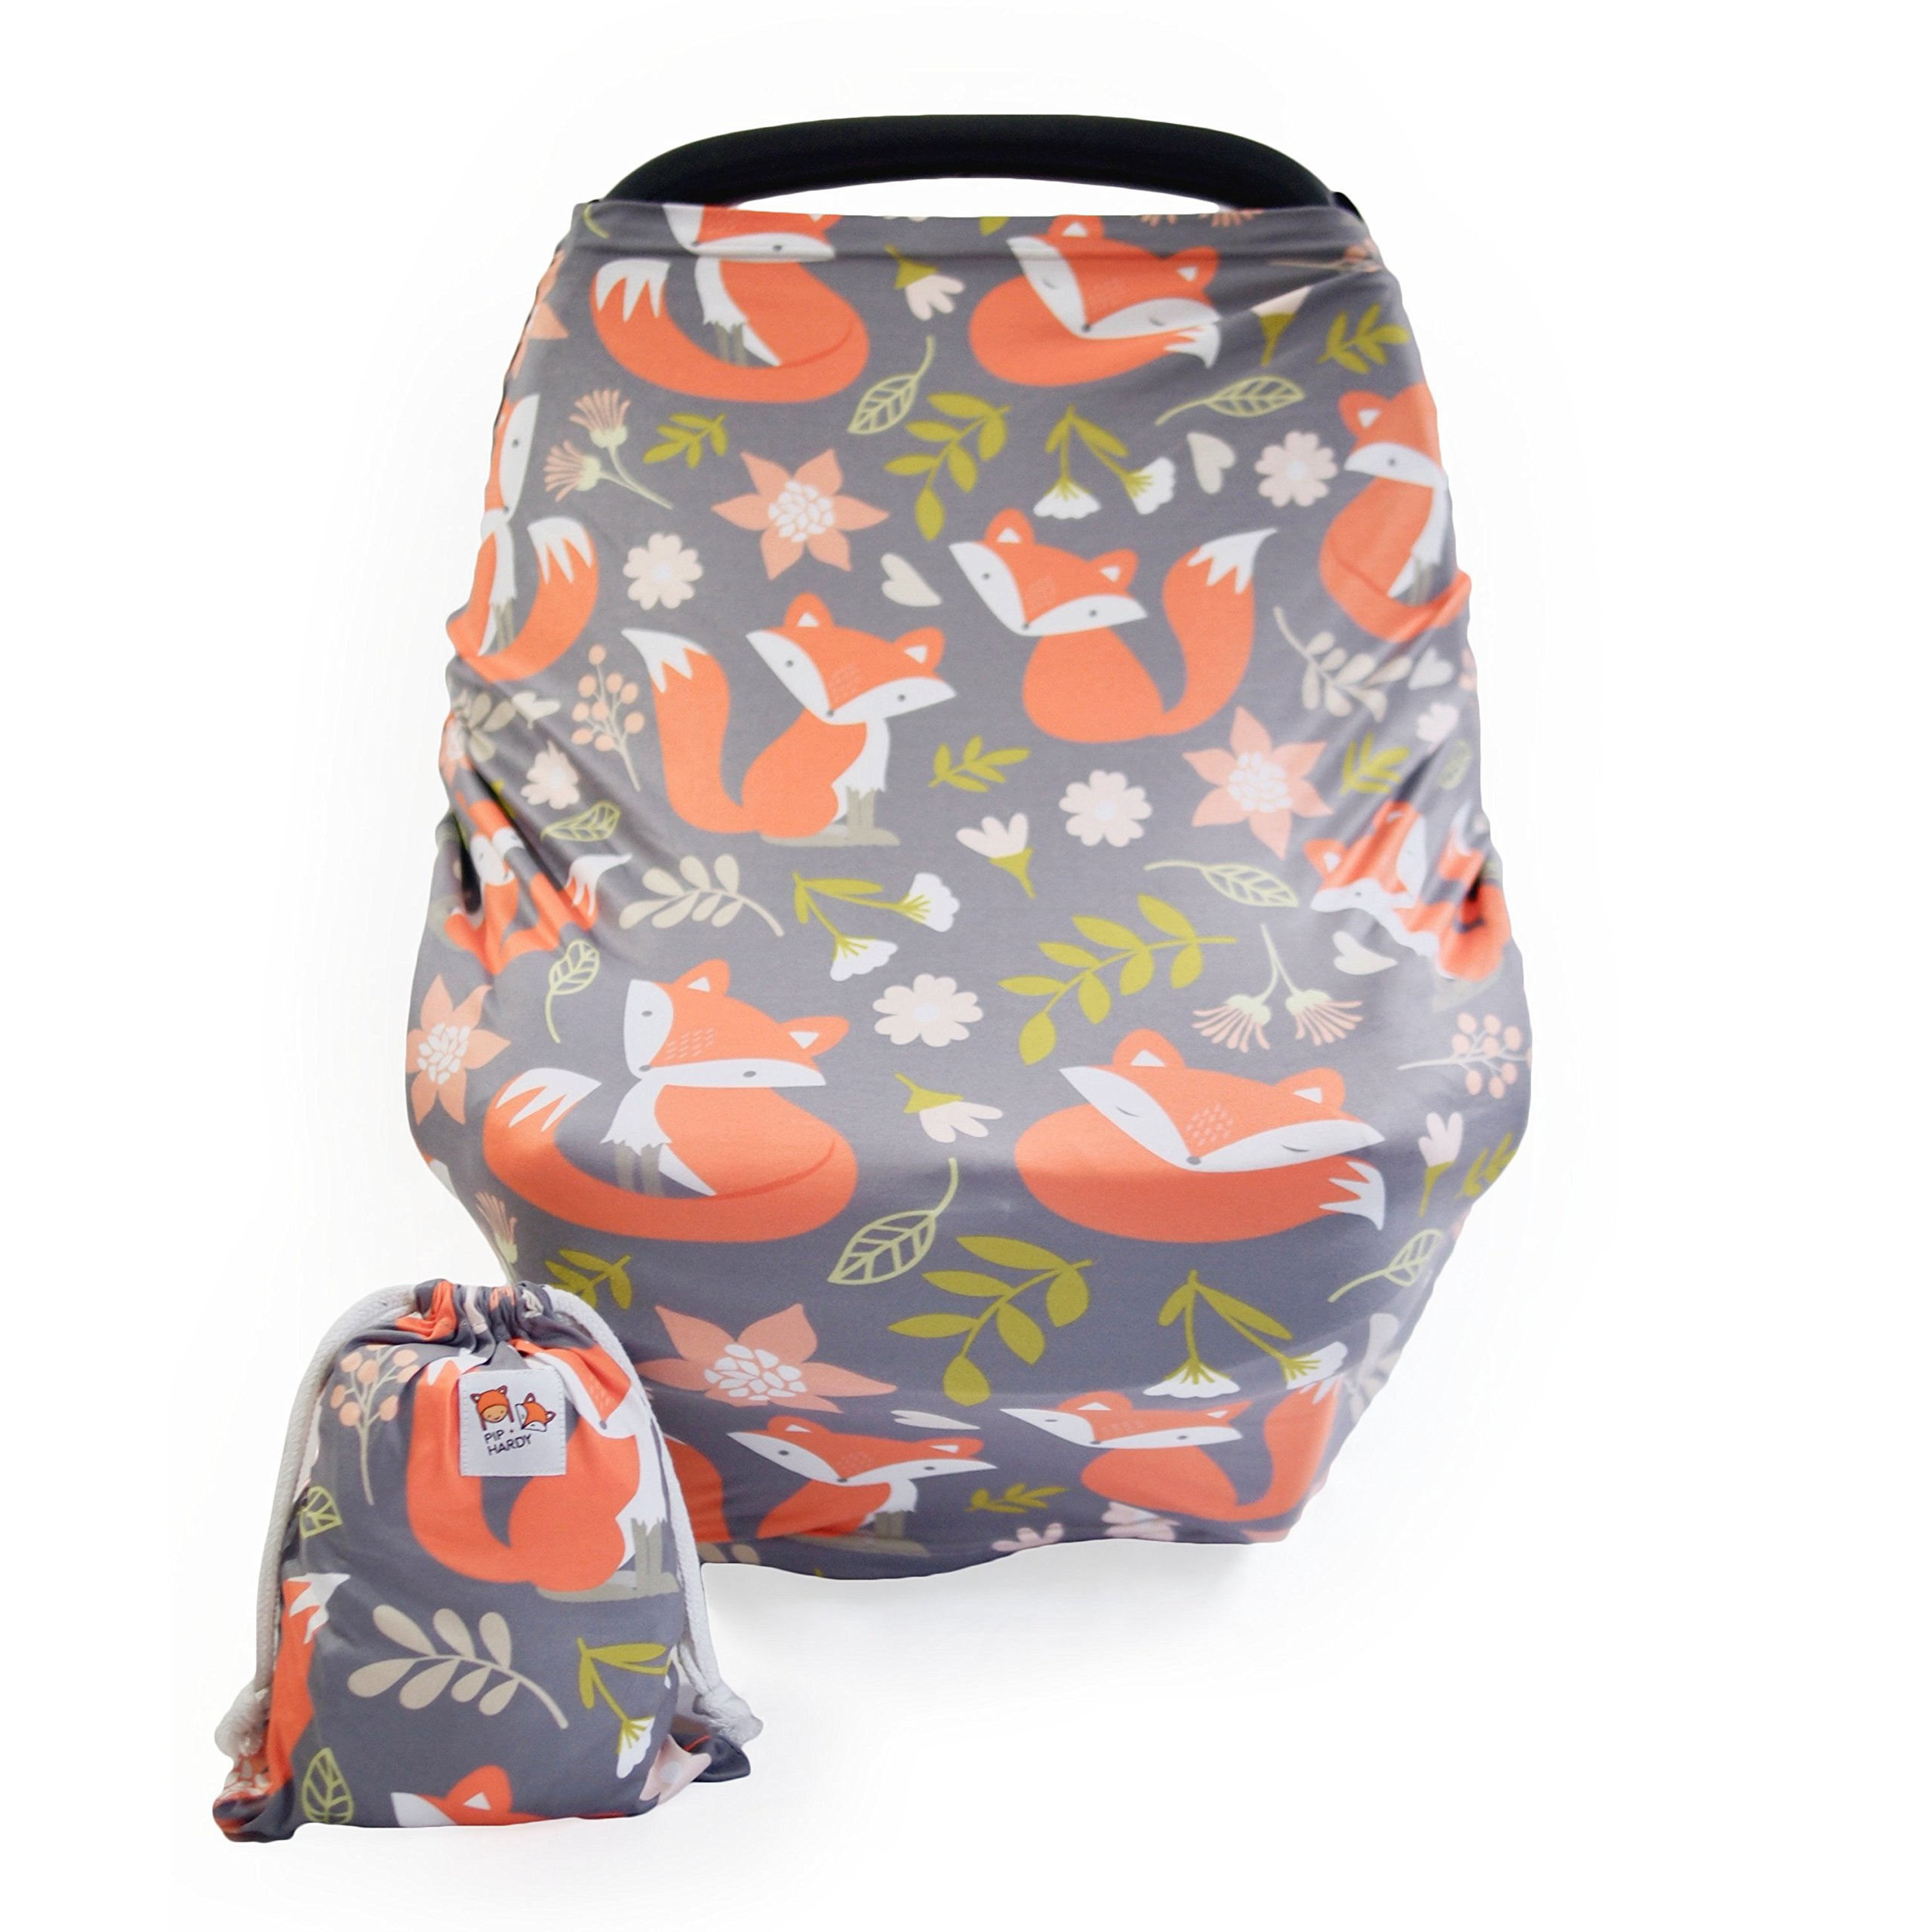 Baby Nursing & Breastfeeding Cover, Car Seat Canopy | Multi-use - Woodland Fox by PIP + HARDY